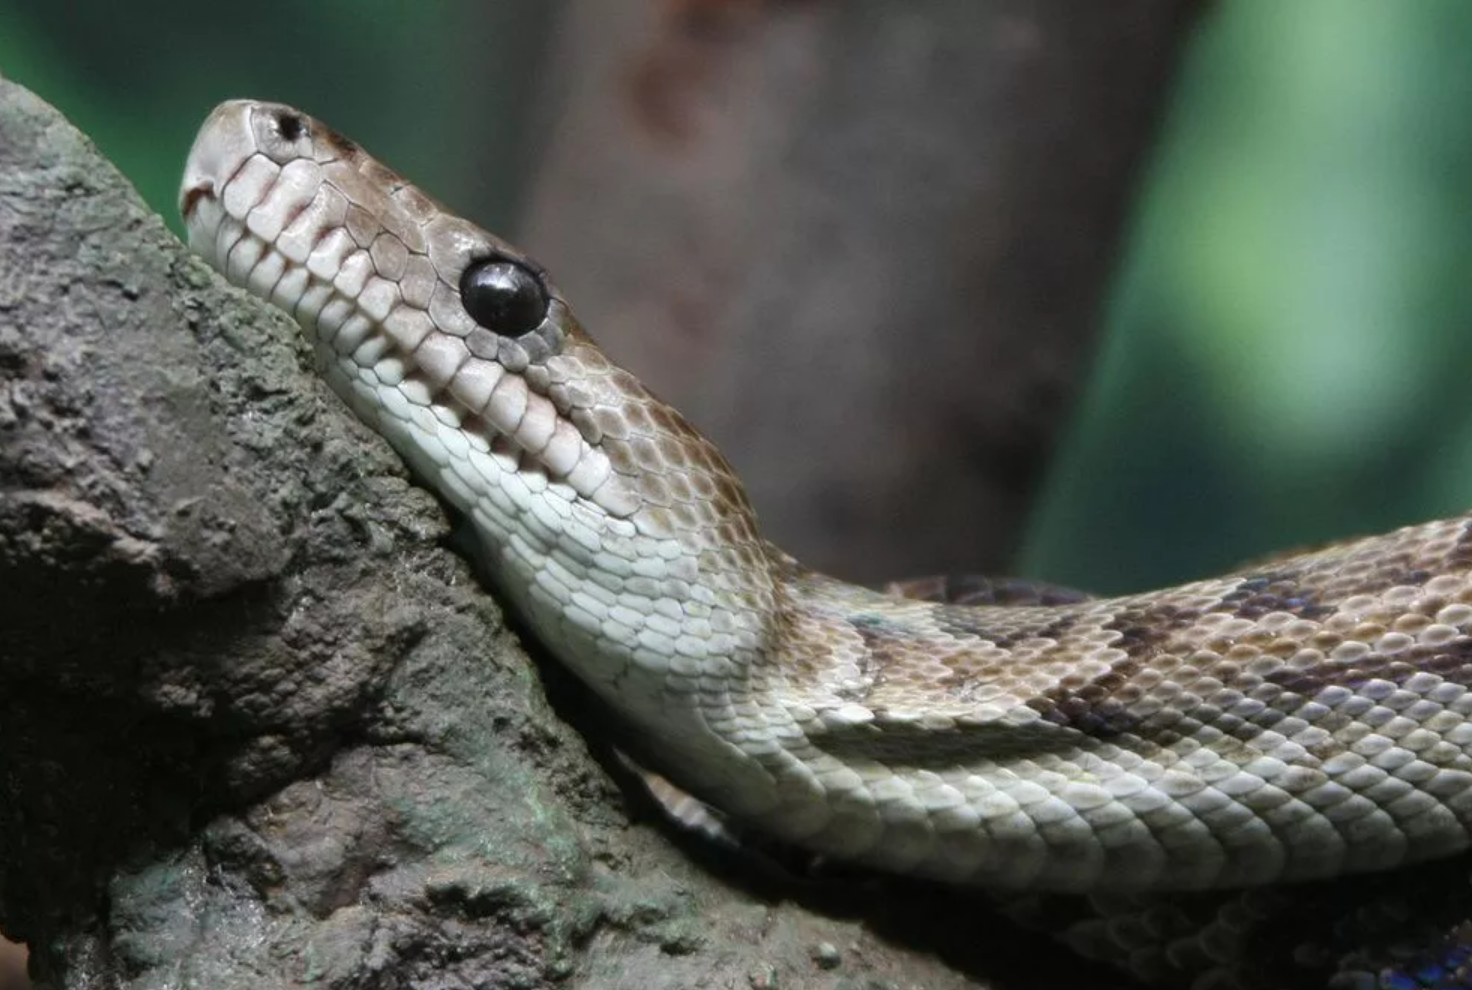 Embrace, Flee or Tolerate: How to Live with Snakes